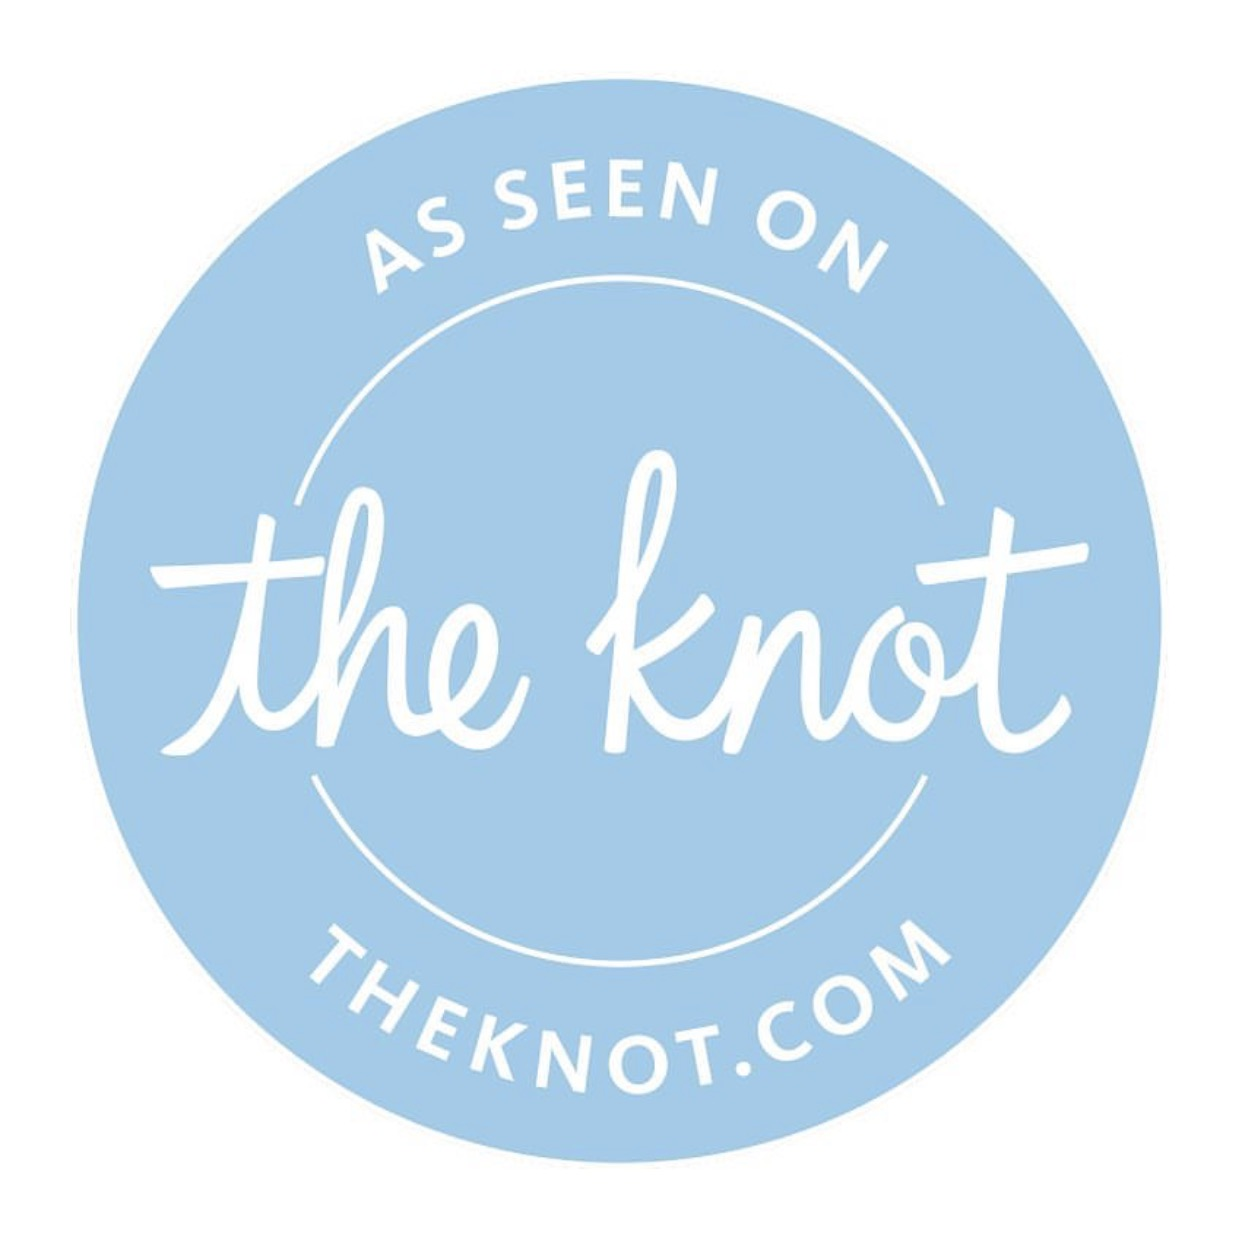 Featured vendor on the knot